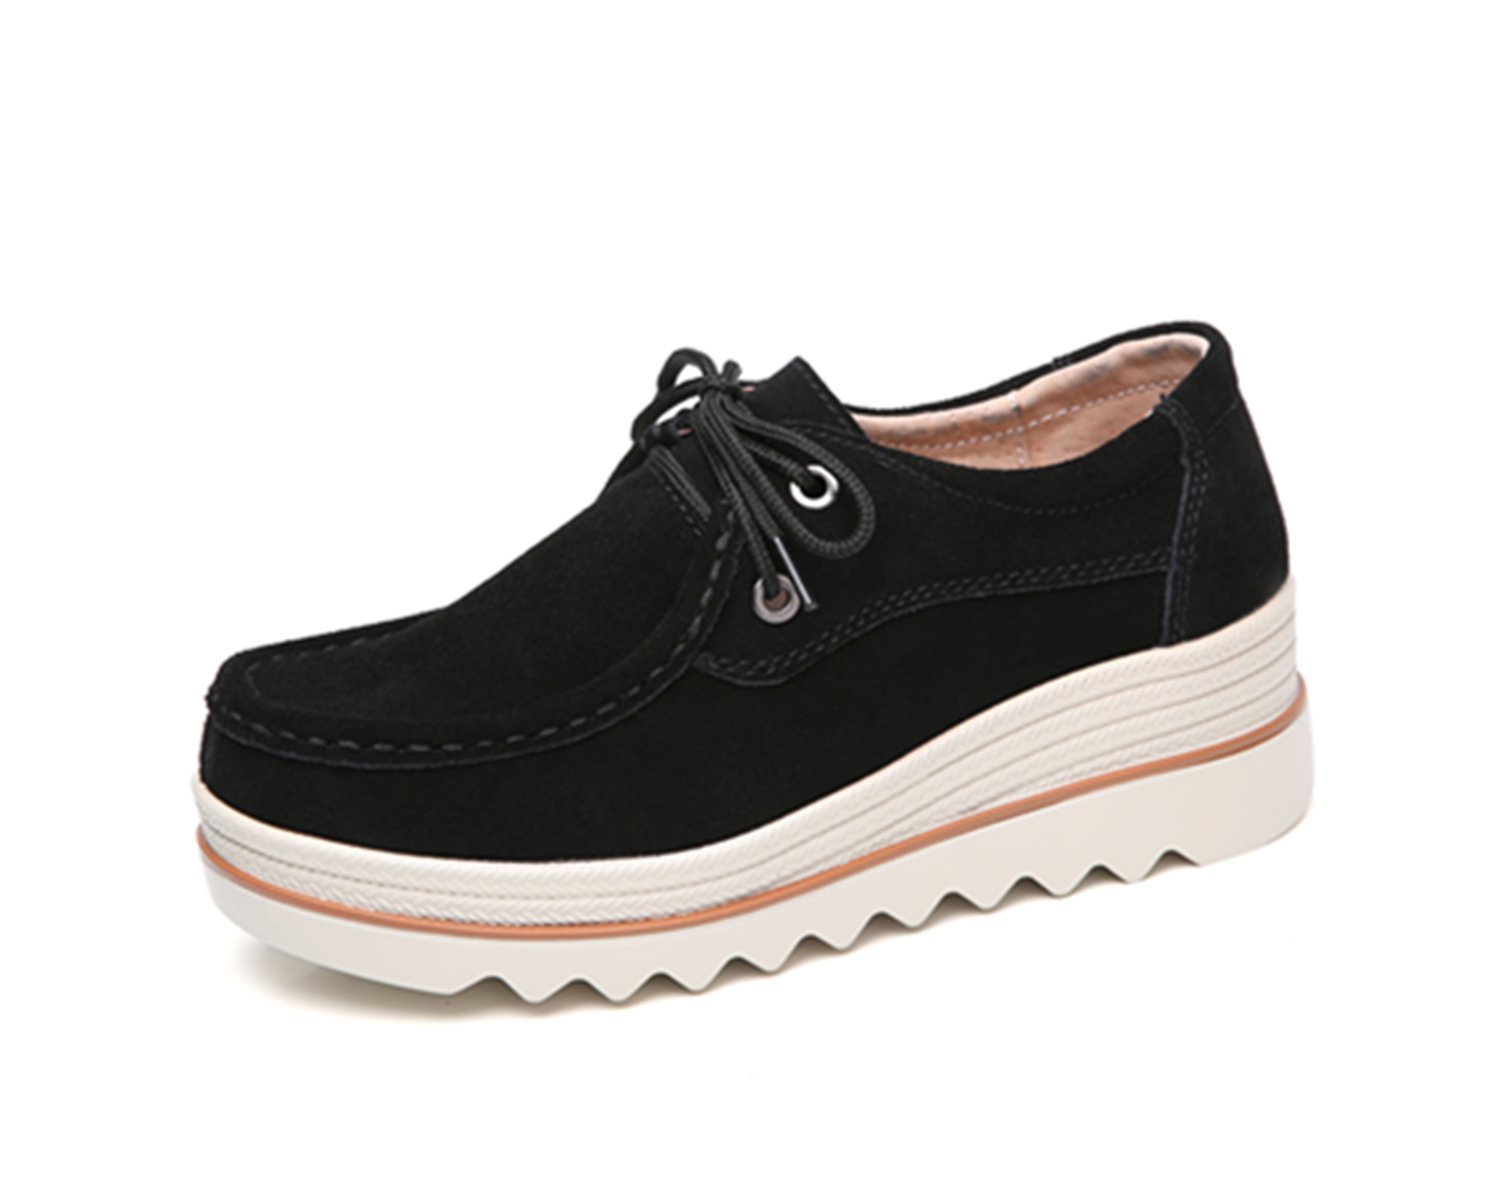 Dhiuow Platform Shoes Women Slip on Loafers Suede Wedge Shoes Comfortable Sneakers for Ladies B07BXRQRMT 5.5 M US|Black#2